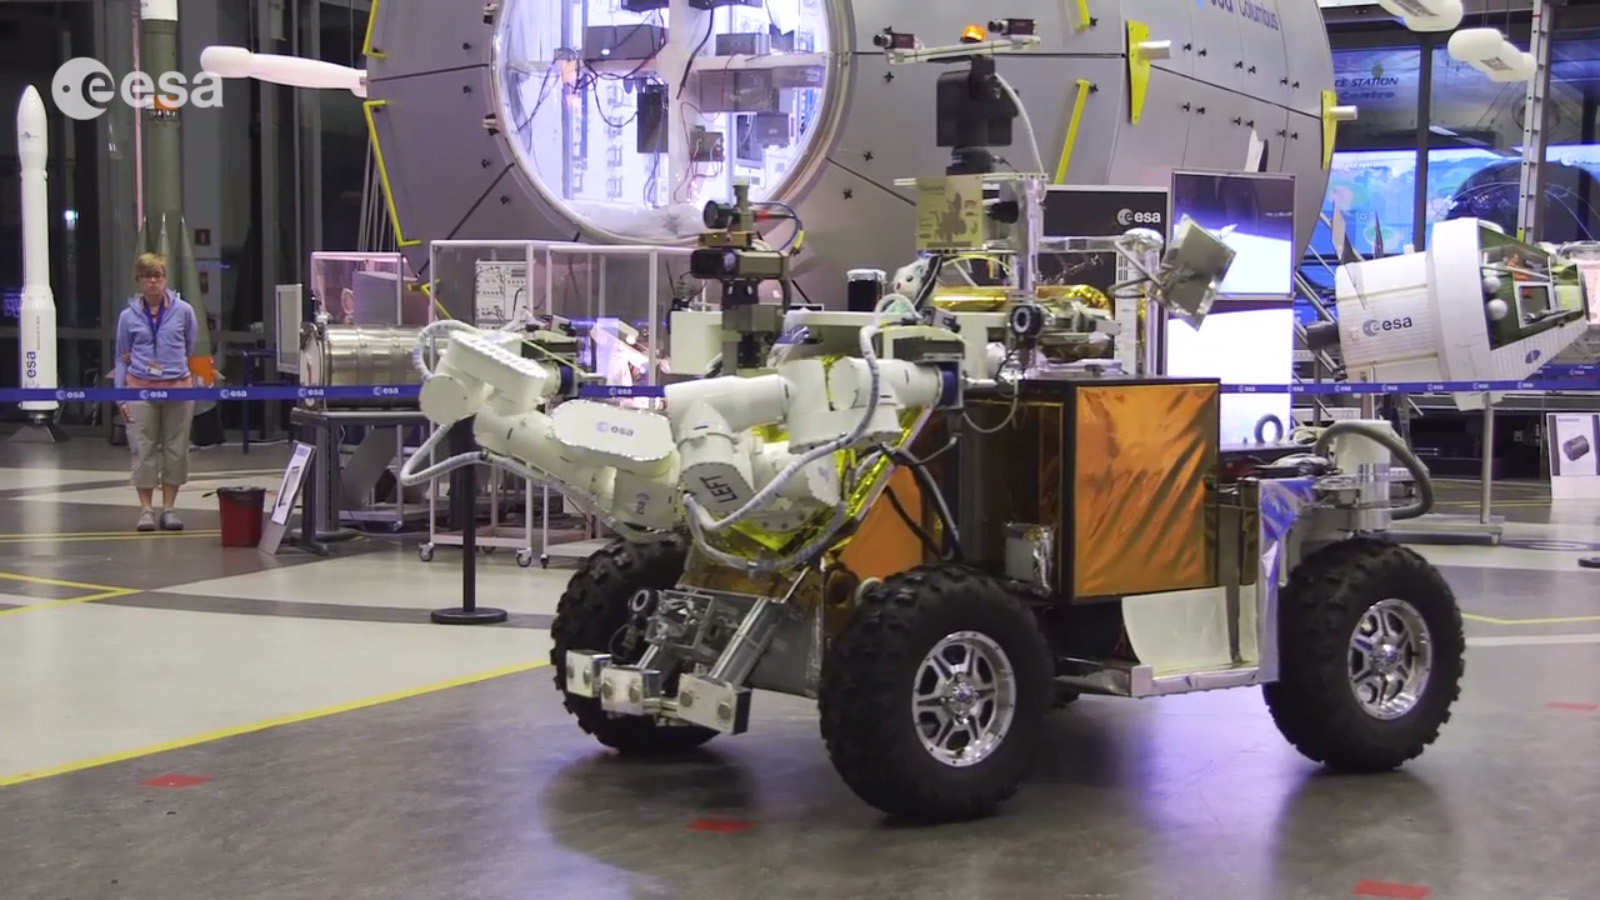 Astronaut in Space Test Drives Robot on Earth (Video)